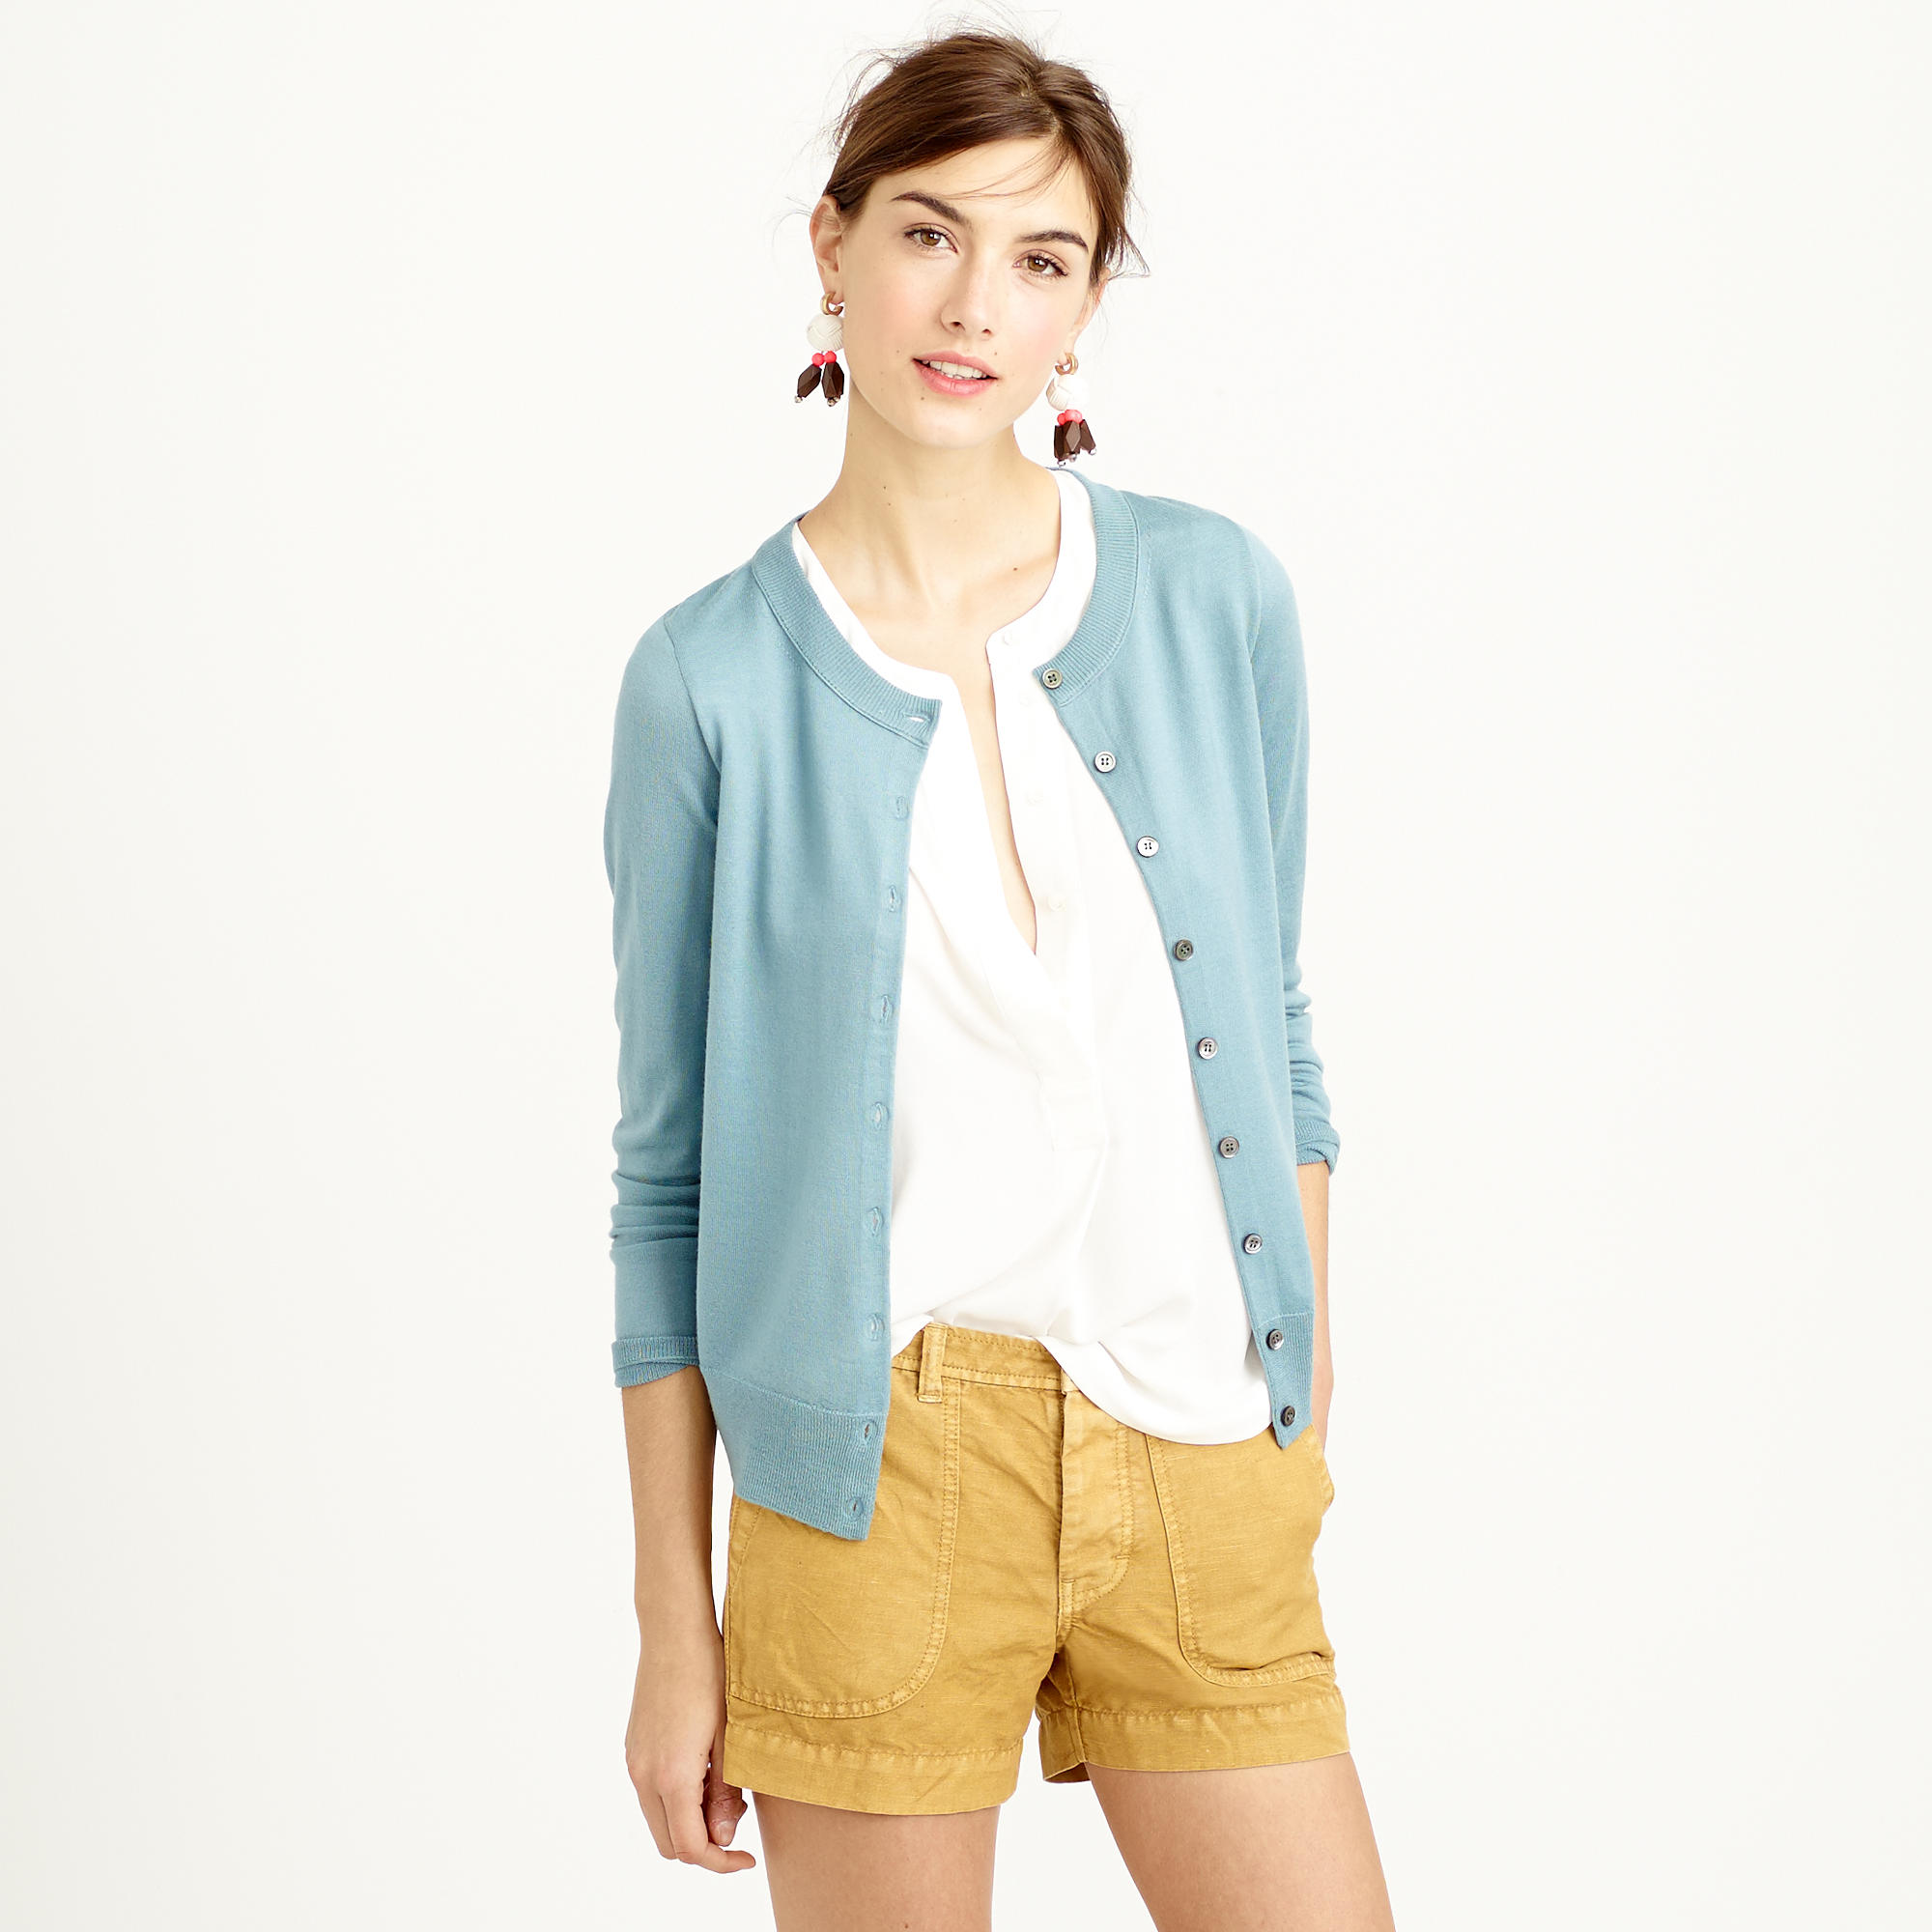 Merino wool Tippi cardigan sweater : Women Cardigans & Shells ...